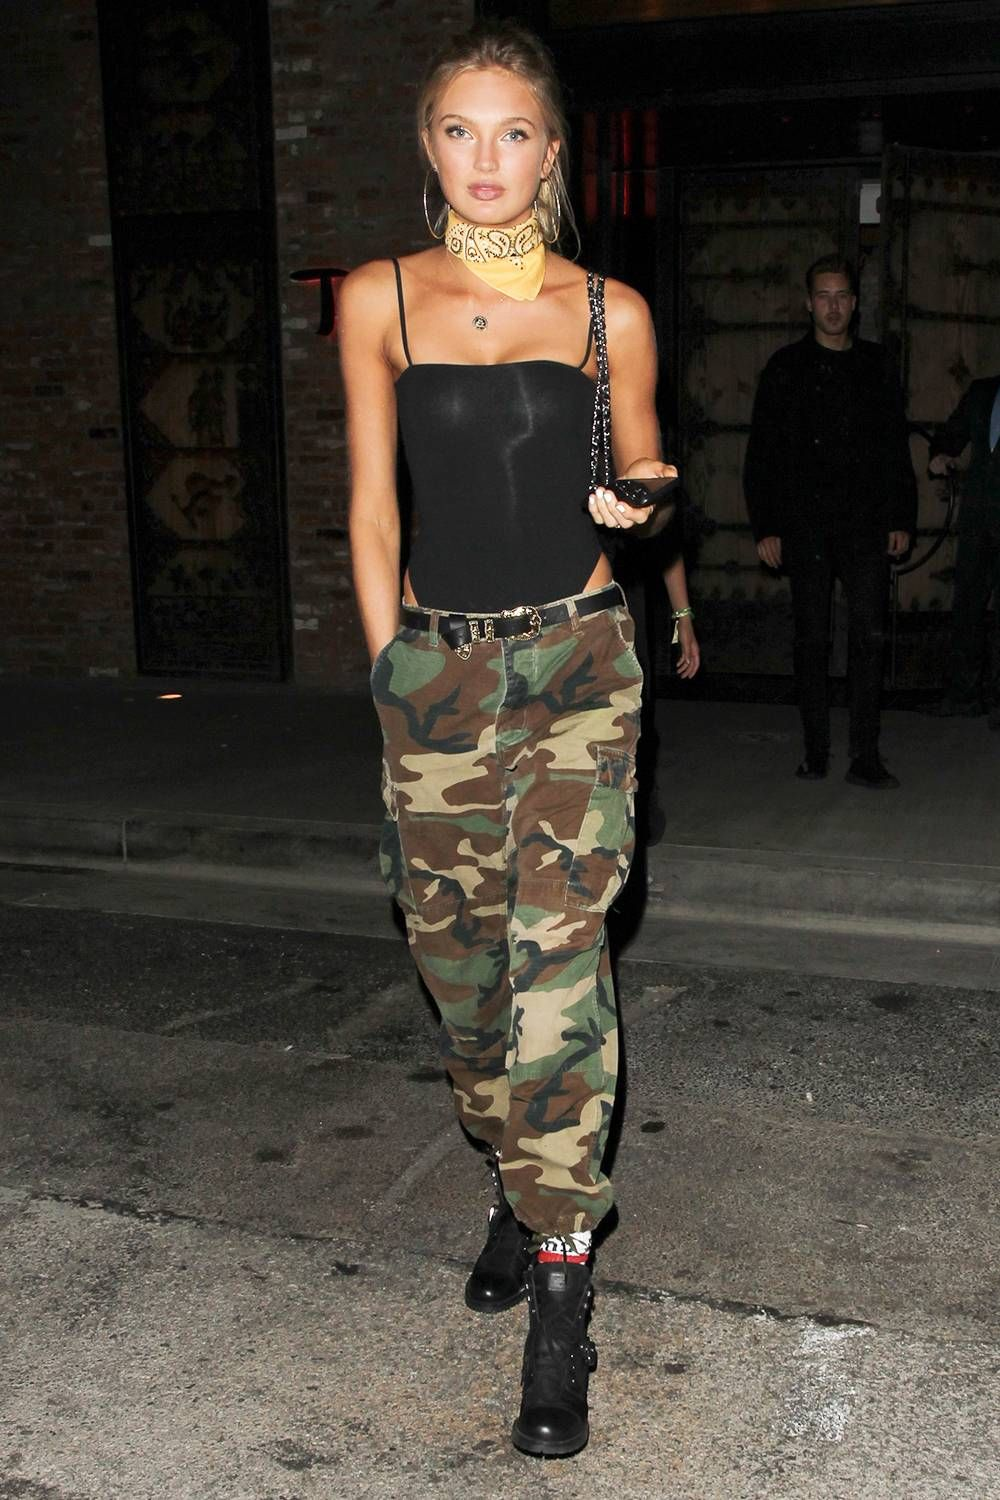 2019 year lifestyle- News: Fashion Celebs Crazy for Cargos